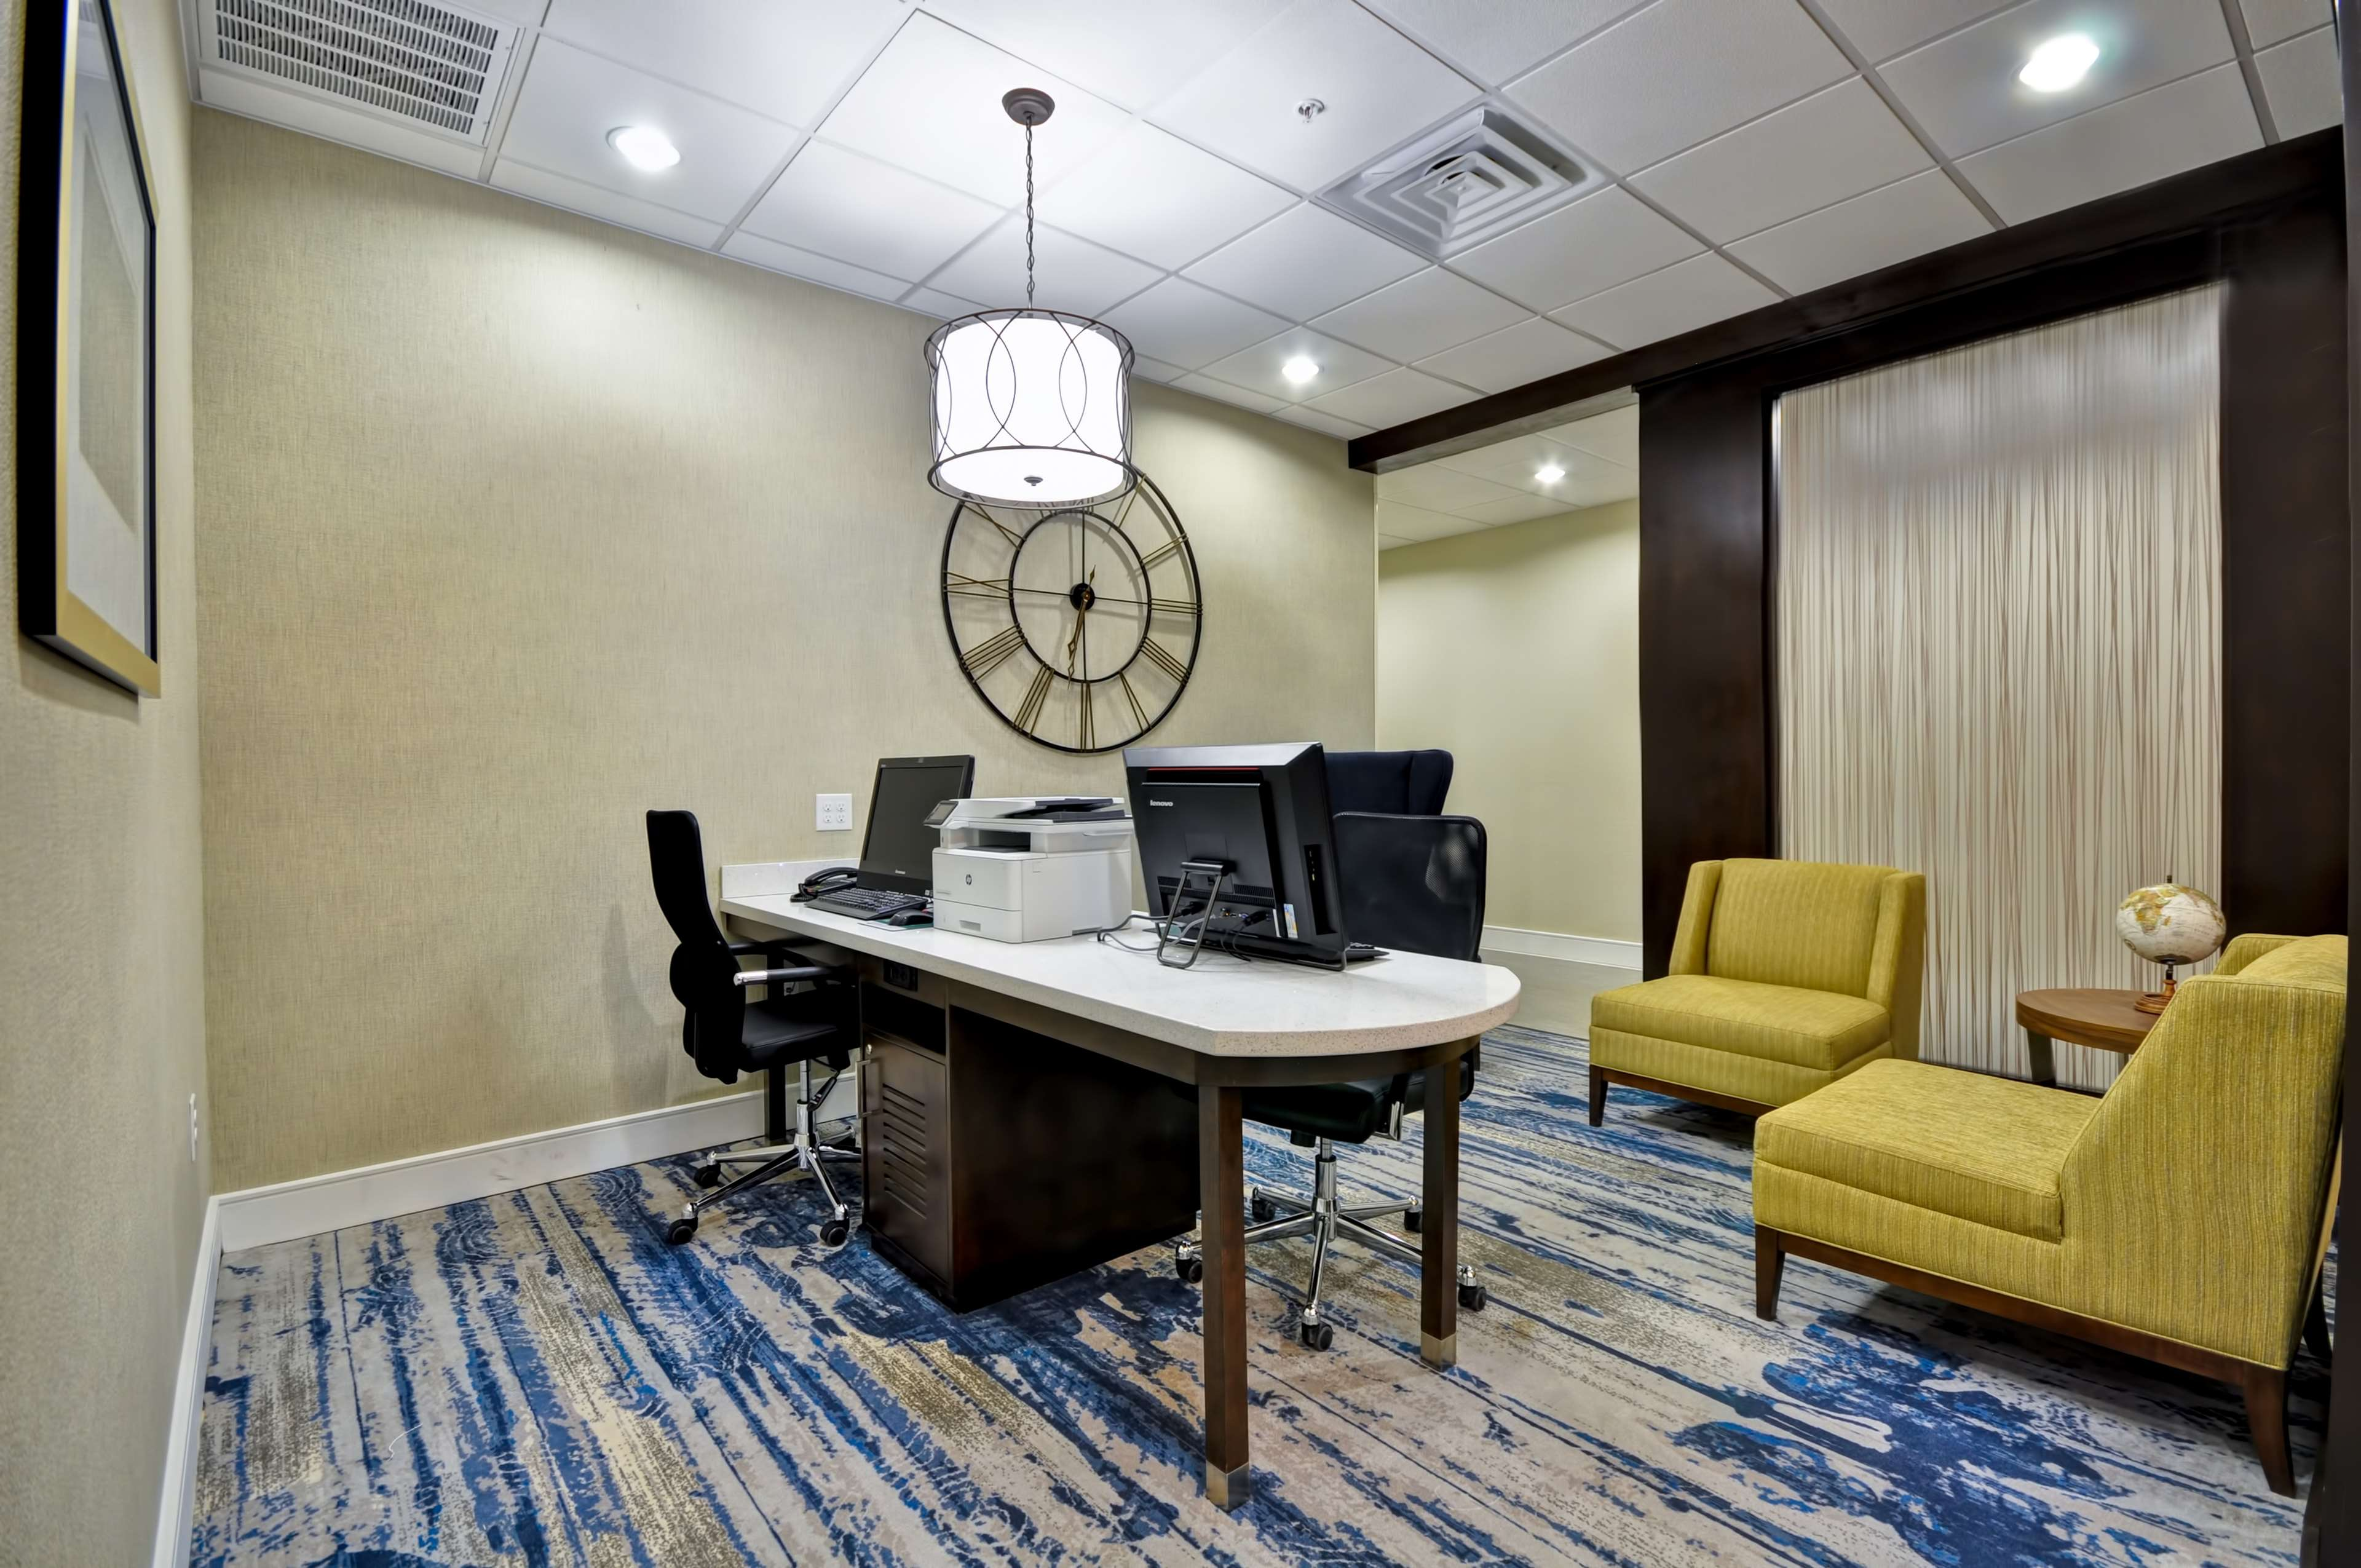 Homewood Suites by Hilton New Braunfels image 45